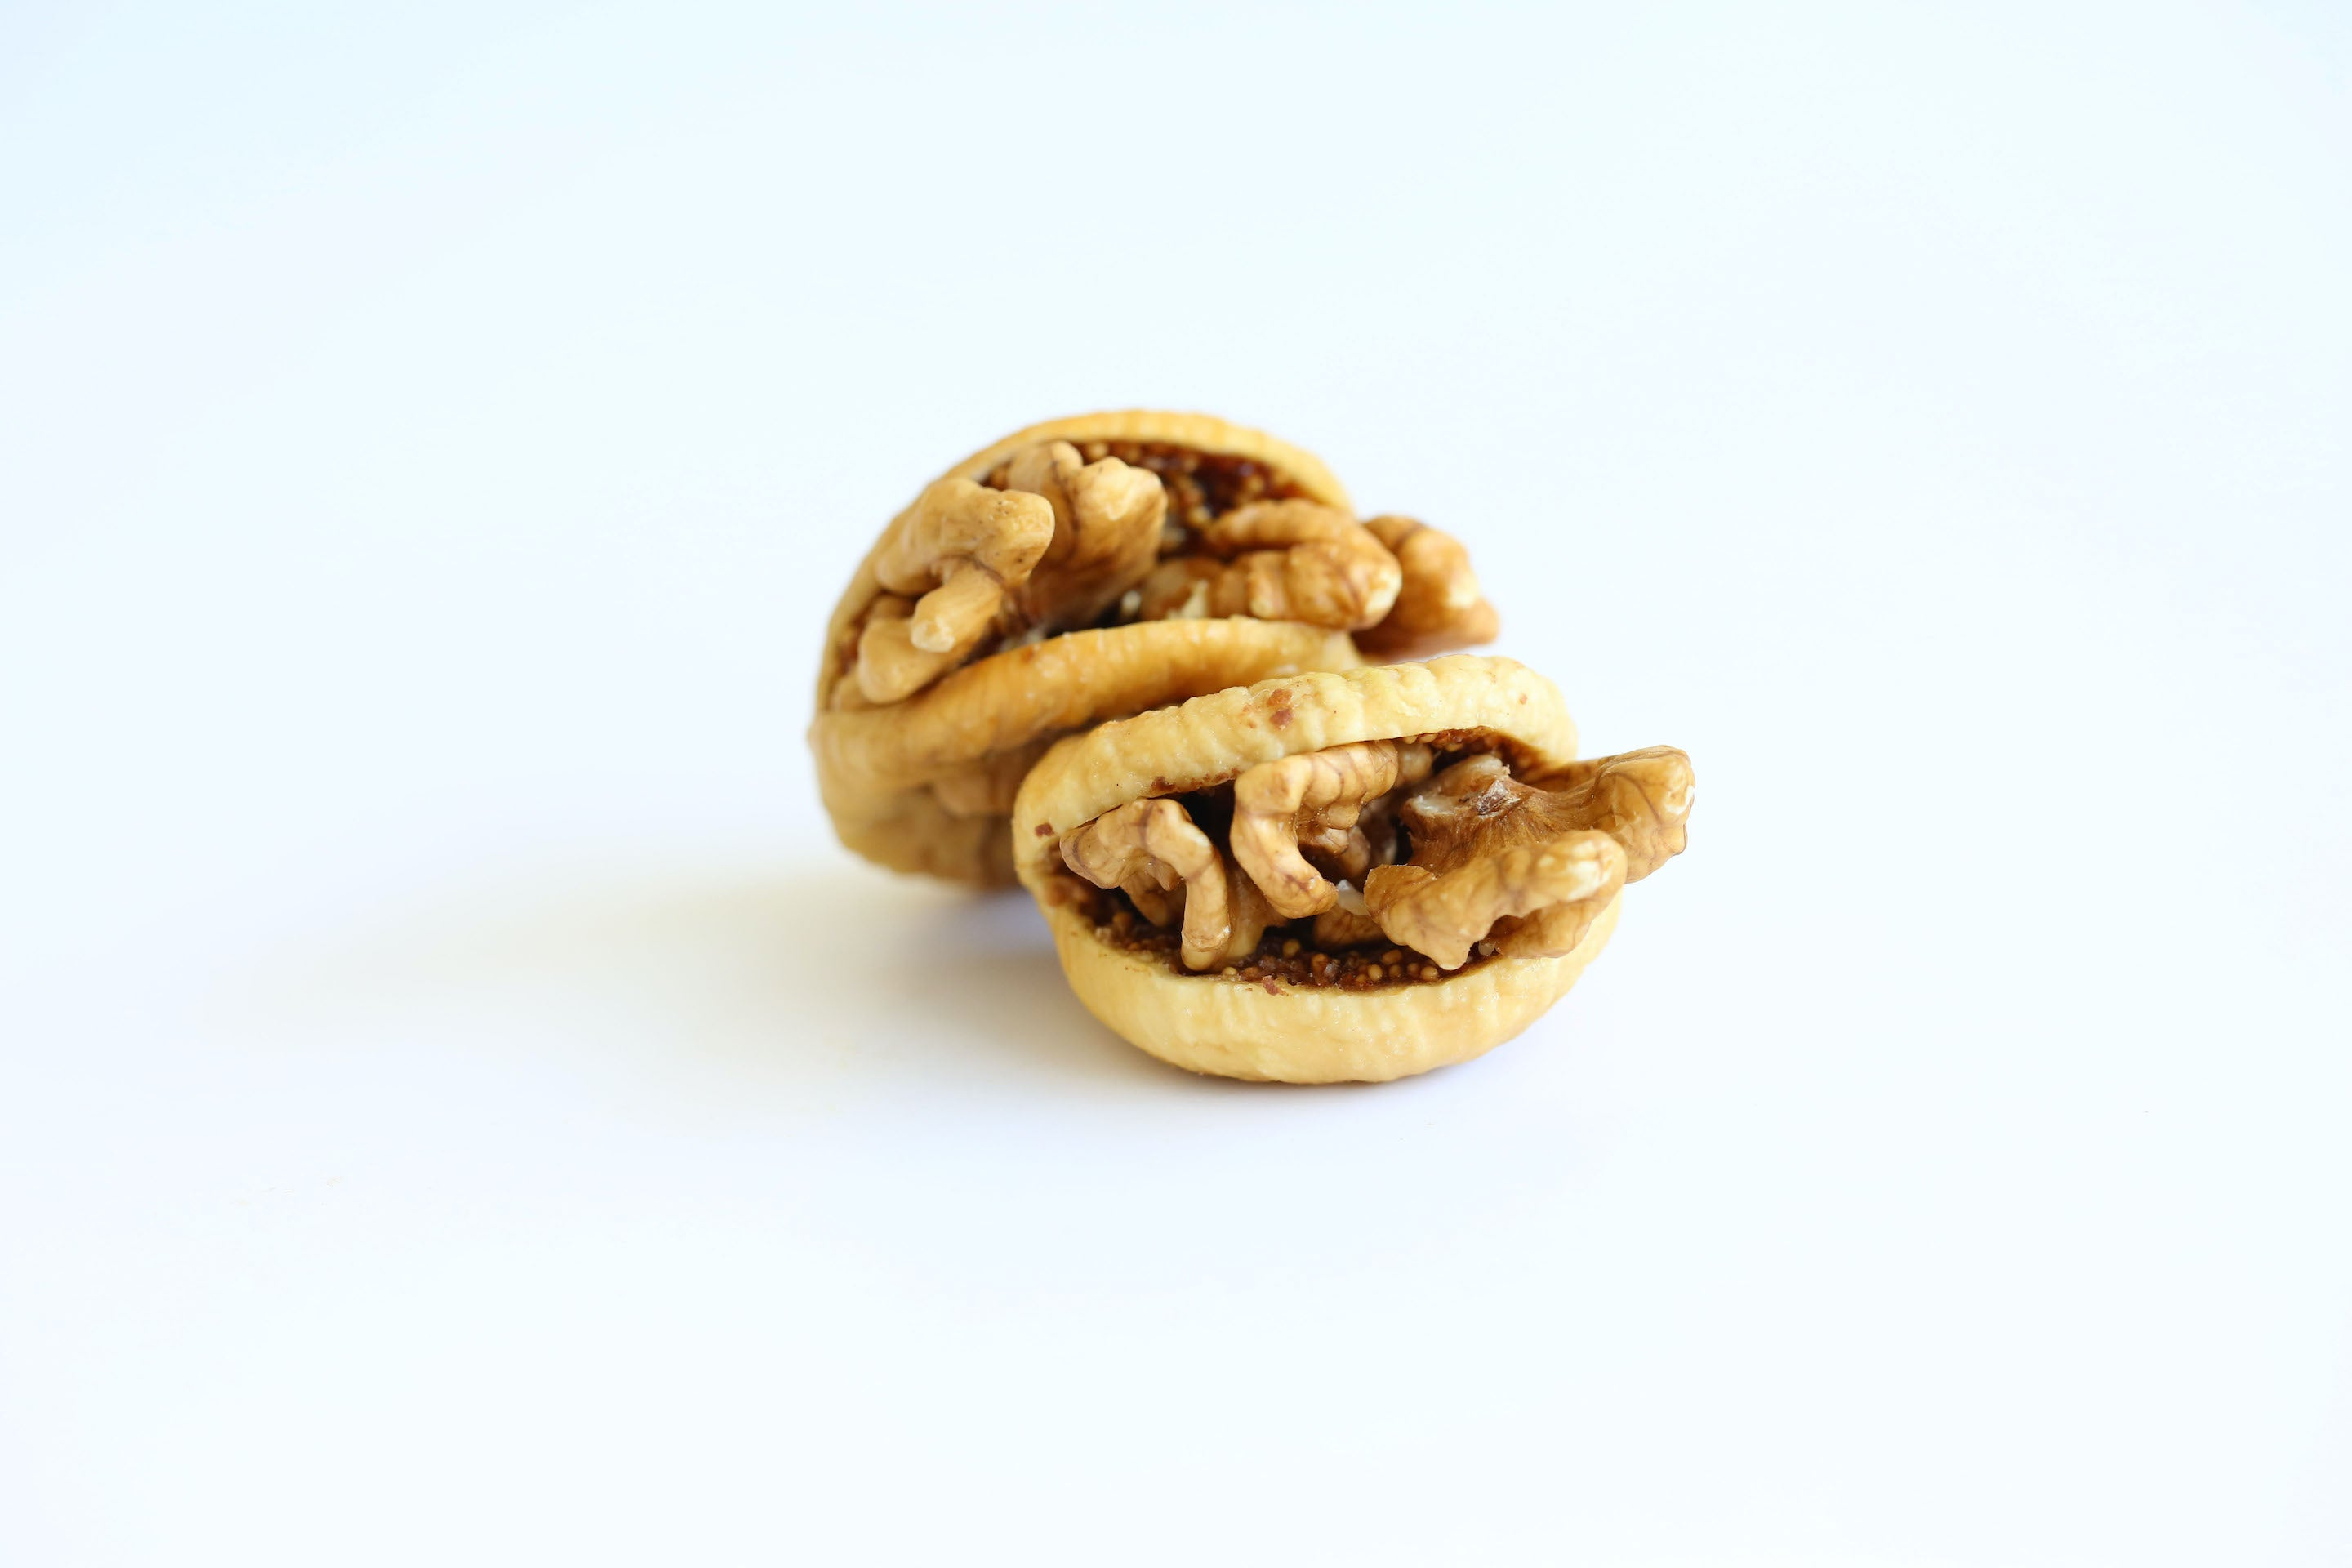 Dried Figs filled with Walnuts